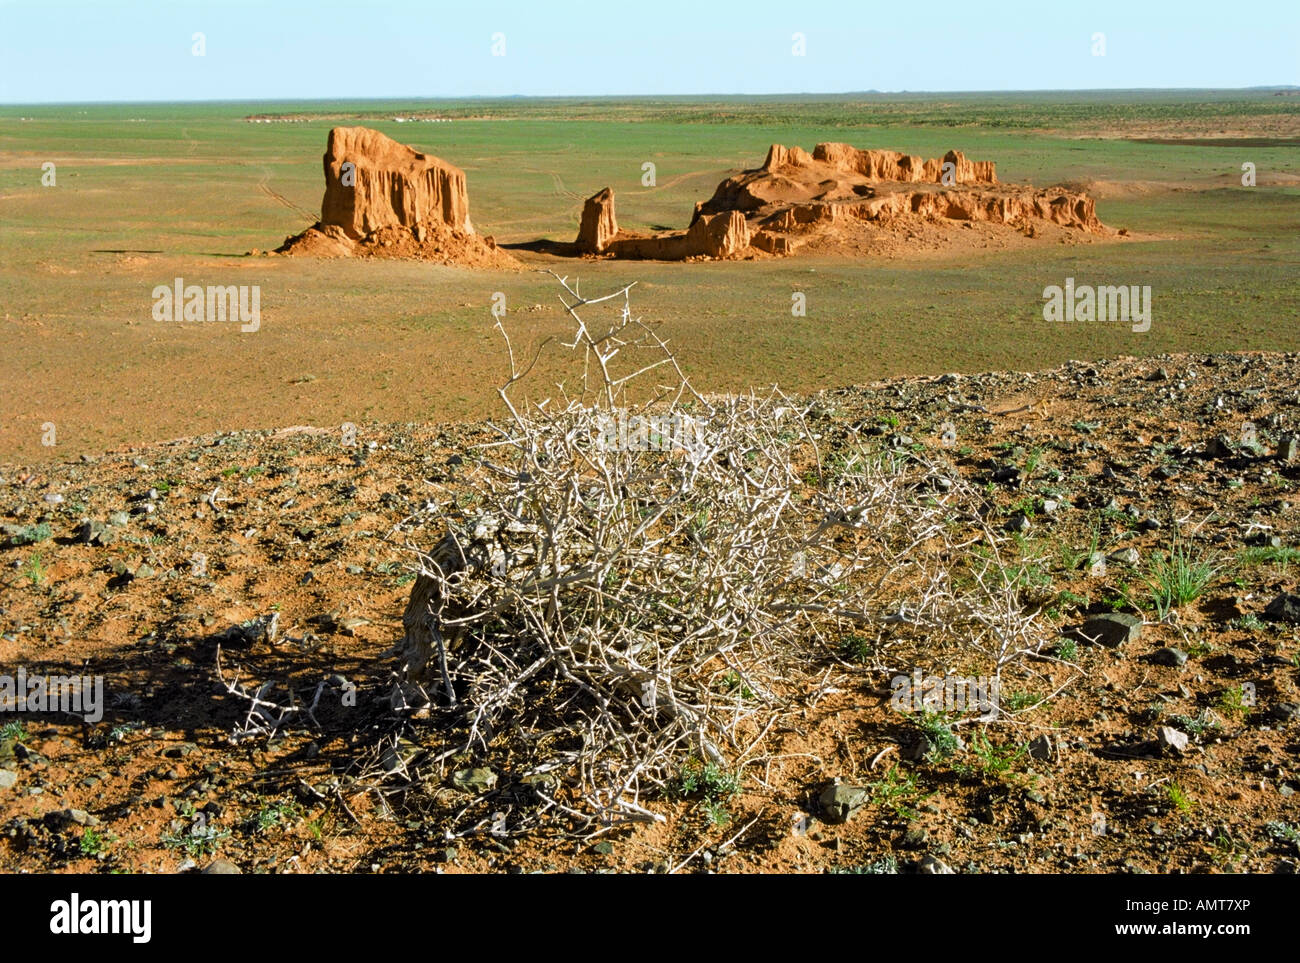 Dried bush of Tumbleweed and erosion formations of brown sedimentary minerals. Bayan Zag, South Gobi desert, Mongolia Stock Photo